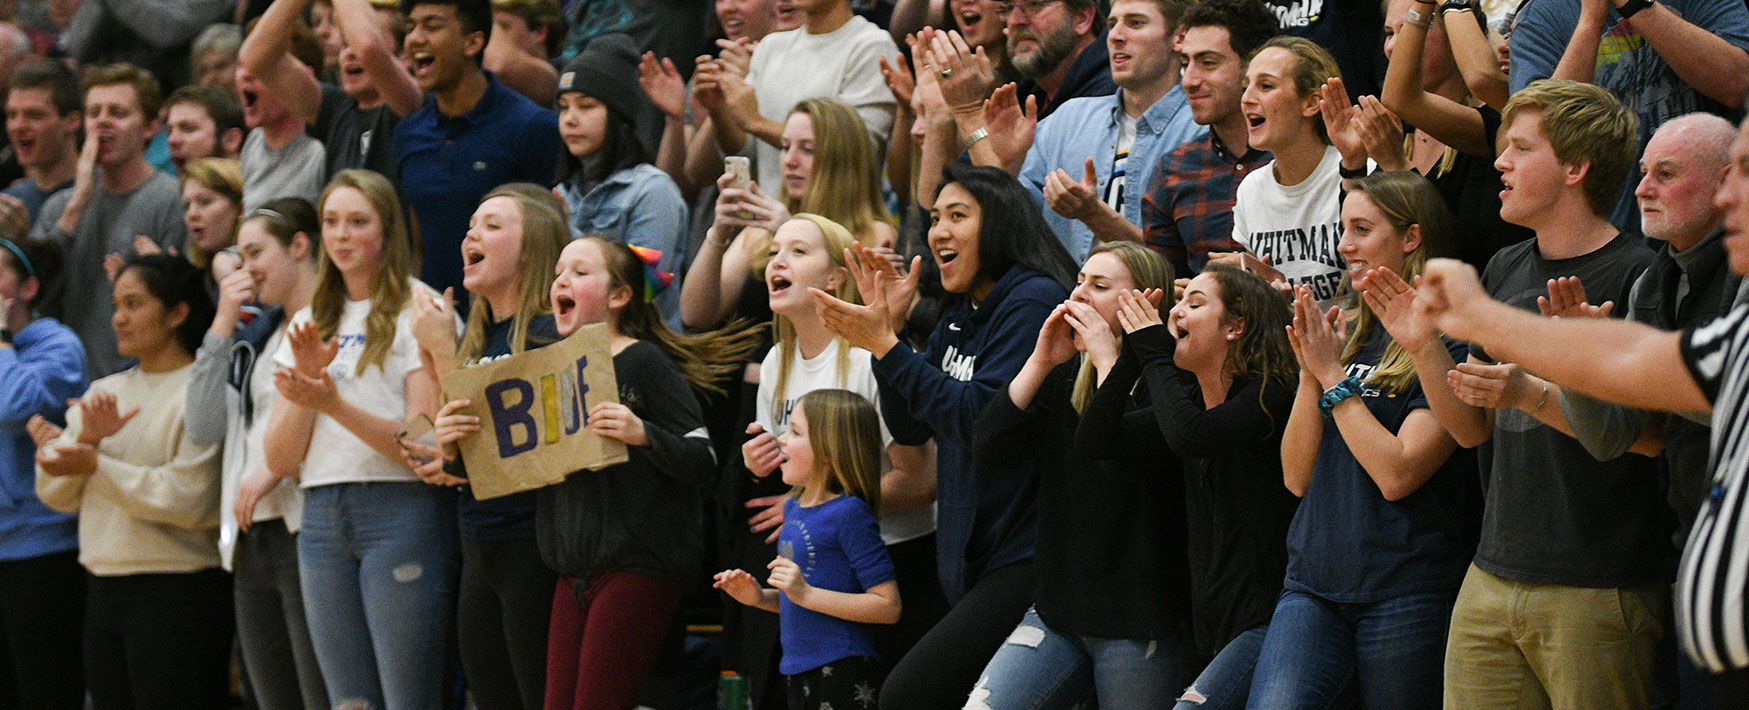 Fans cheering the Whitman Blues